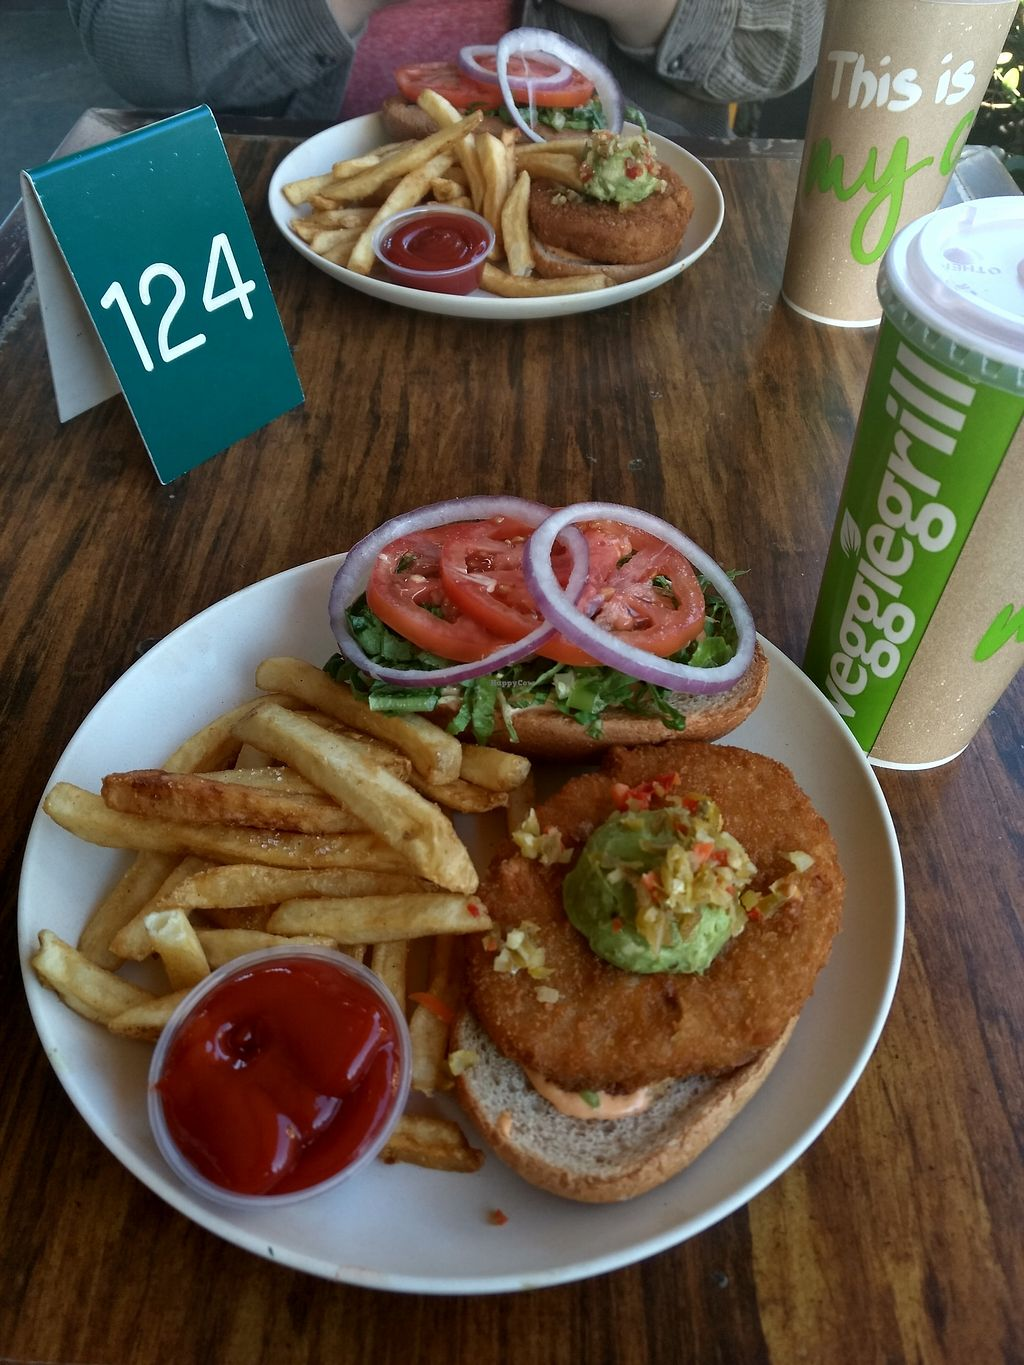 """Photo of Veggie Grill  by <a href=""""/members/profile/anastronomy"""">anastronomy</a> <br/>Burger with faux meat <br/> December 26, 2017  - <a href='/contact/abuse/image/33046/339120'>Report</a>"""